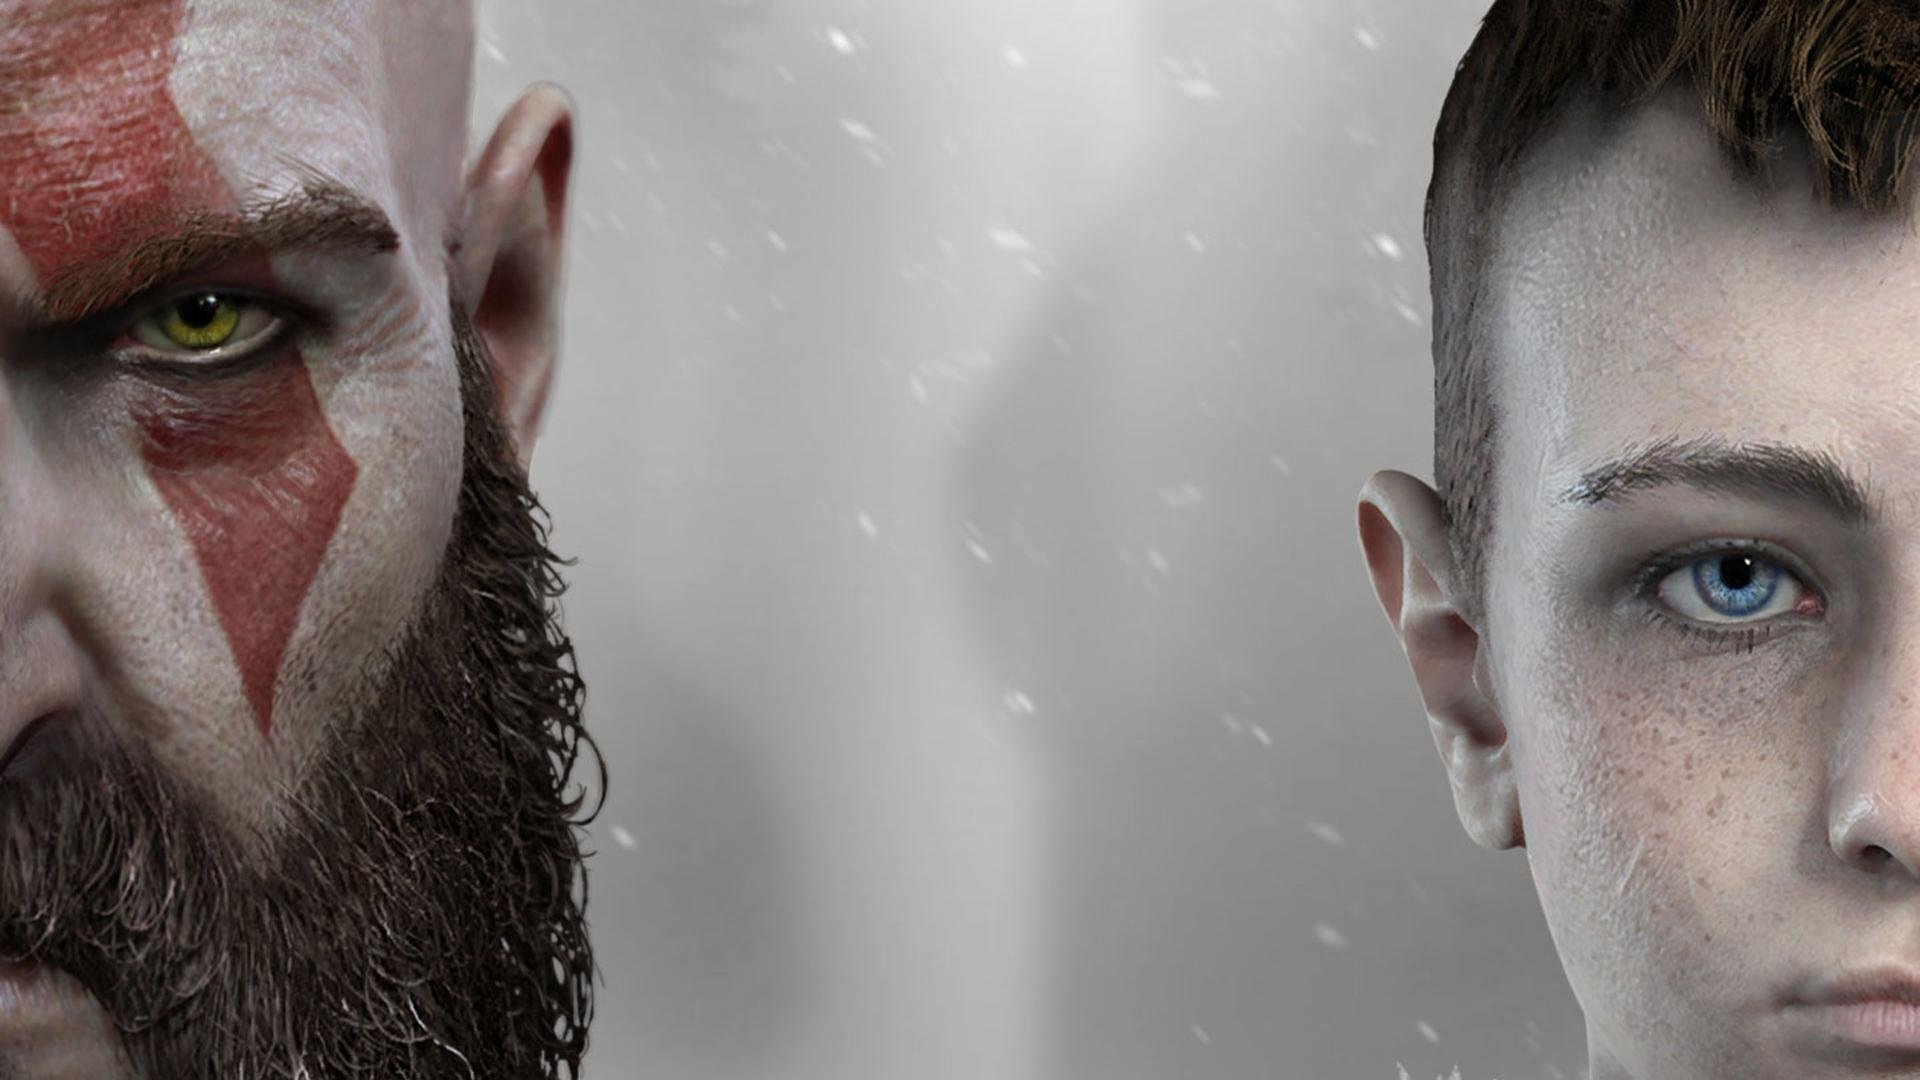 Awesome God Of War 4 Free Wallpaper Id 70193 For Full Hd 1080p Desktop